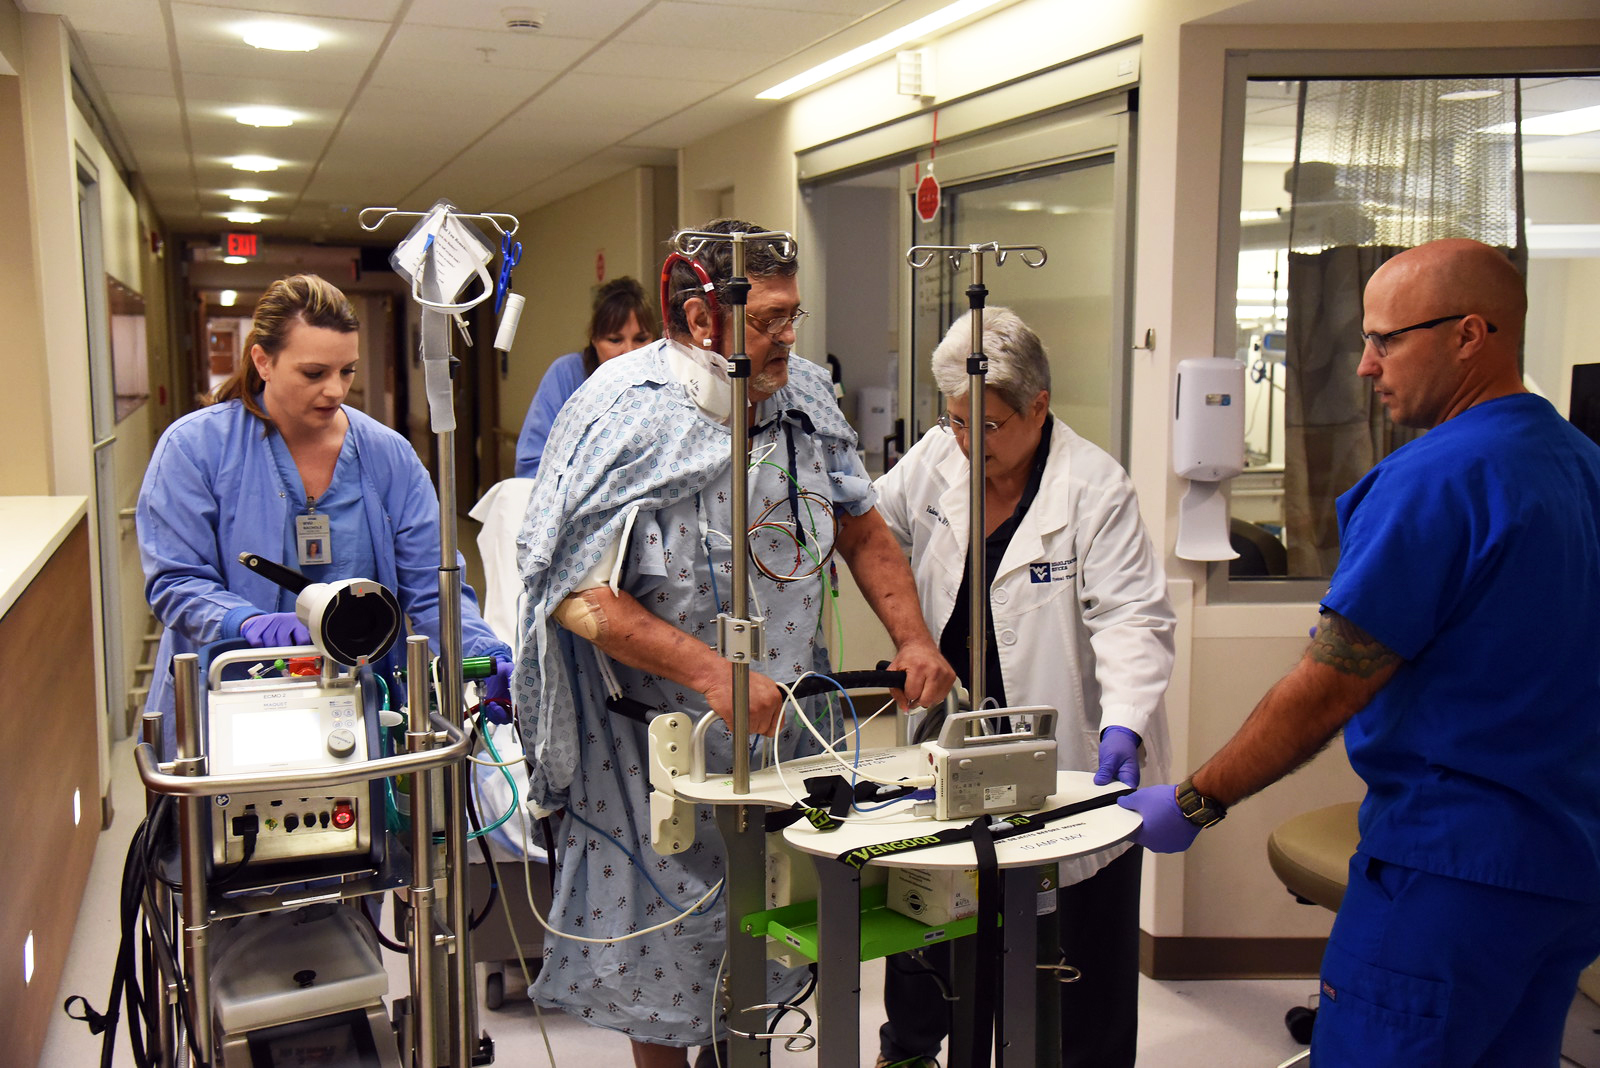 ECMO patient Charles Shoffler walks with the assistance of nurses and therapists